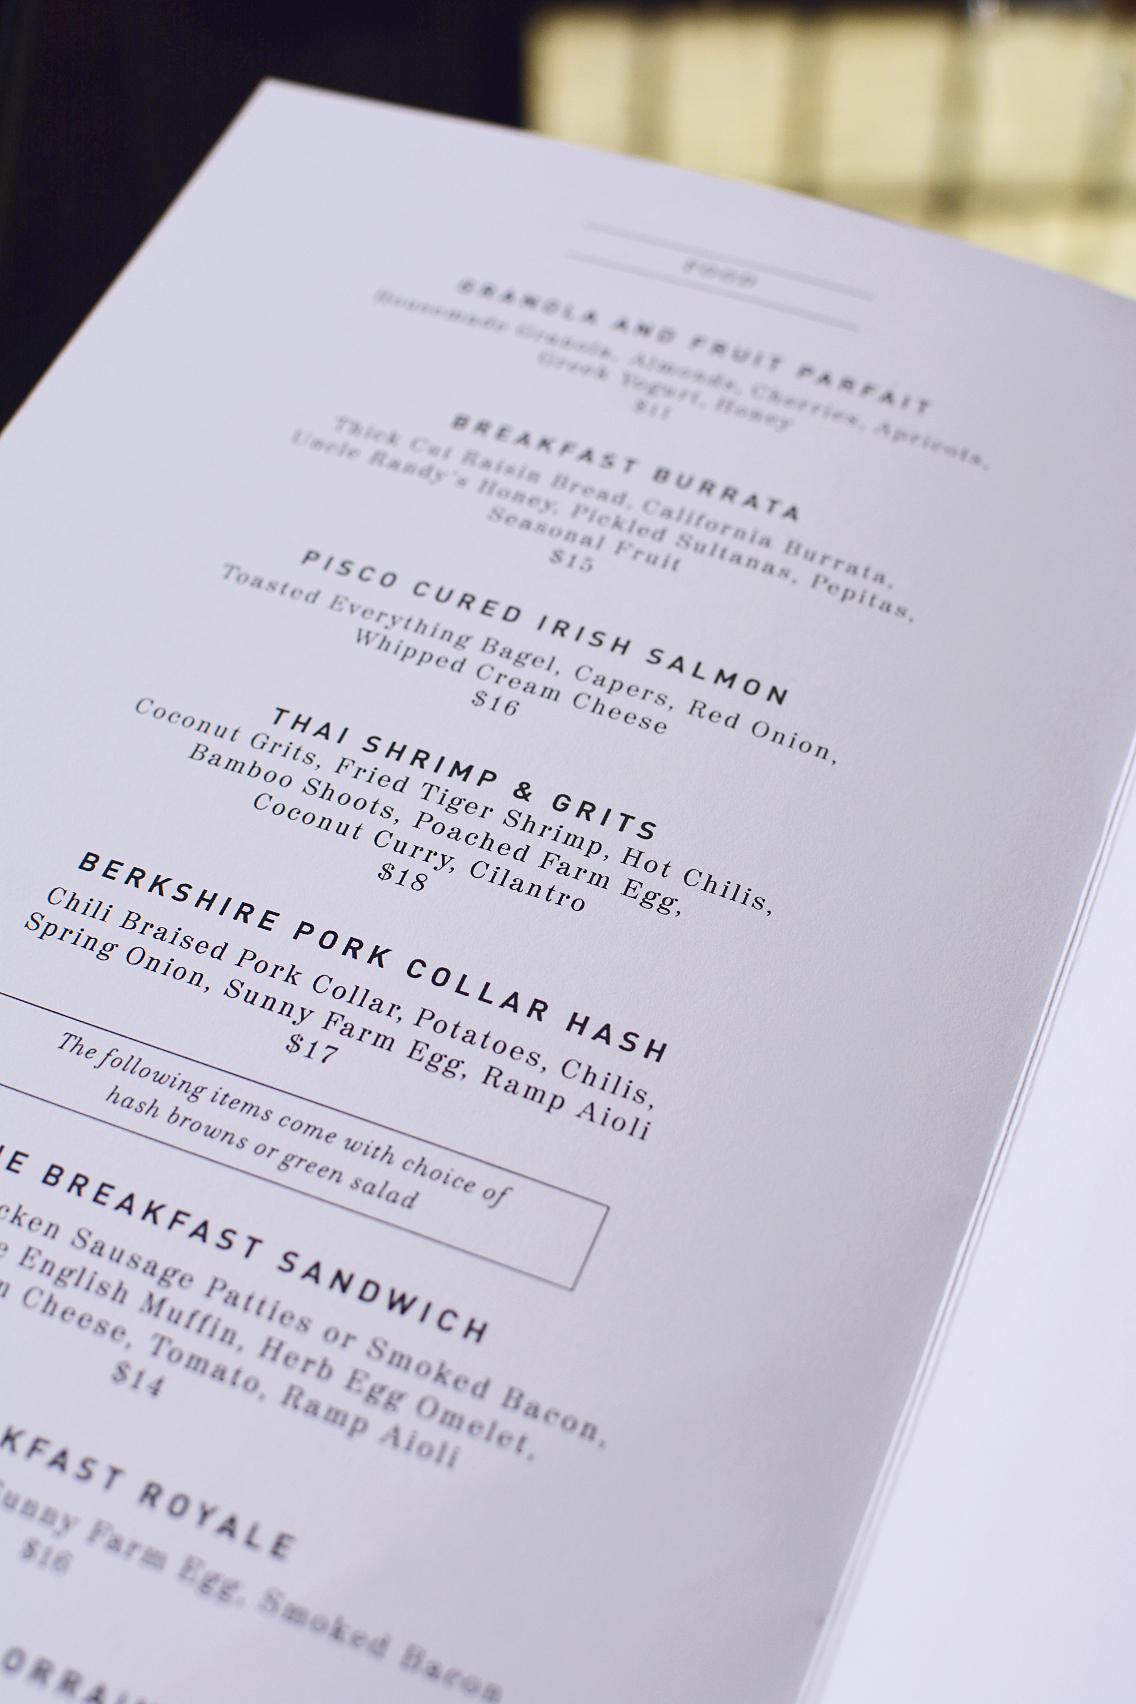 Presidio Brunch Menu Chicago